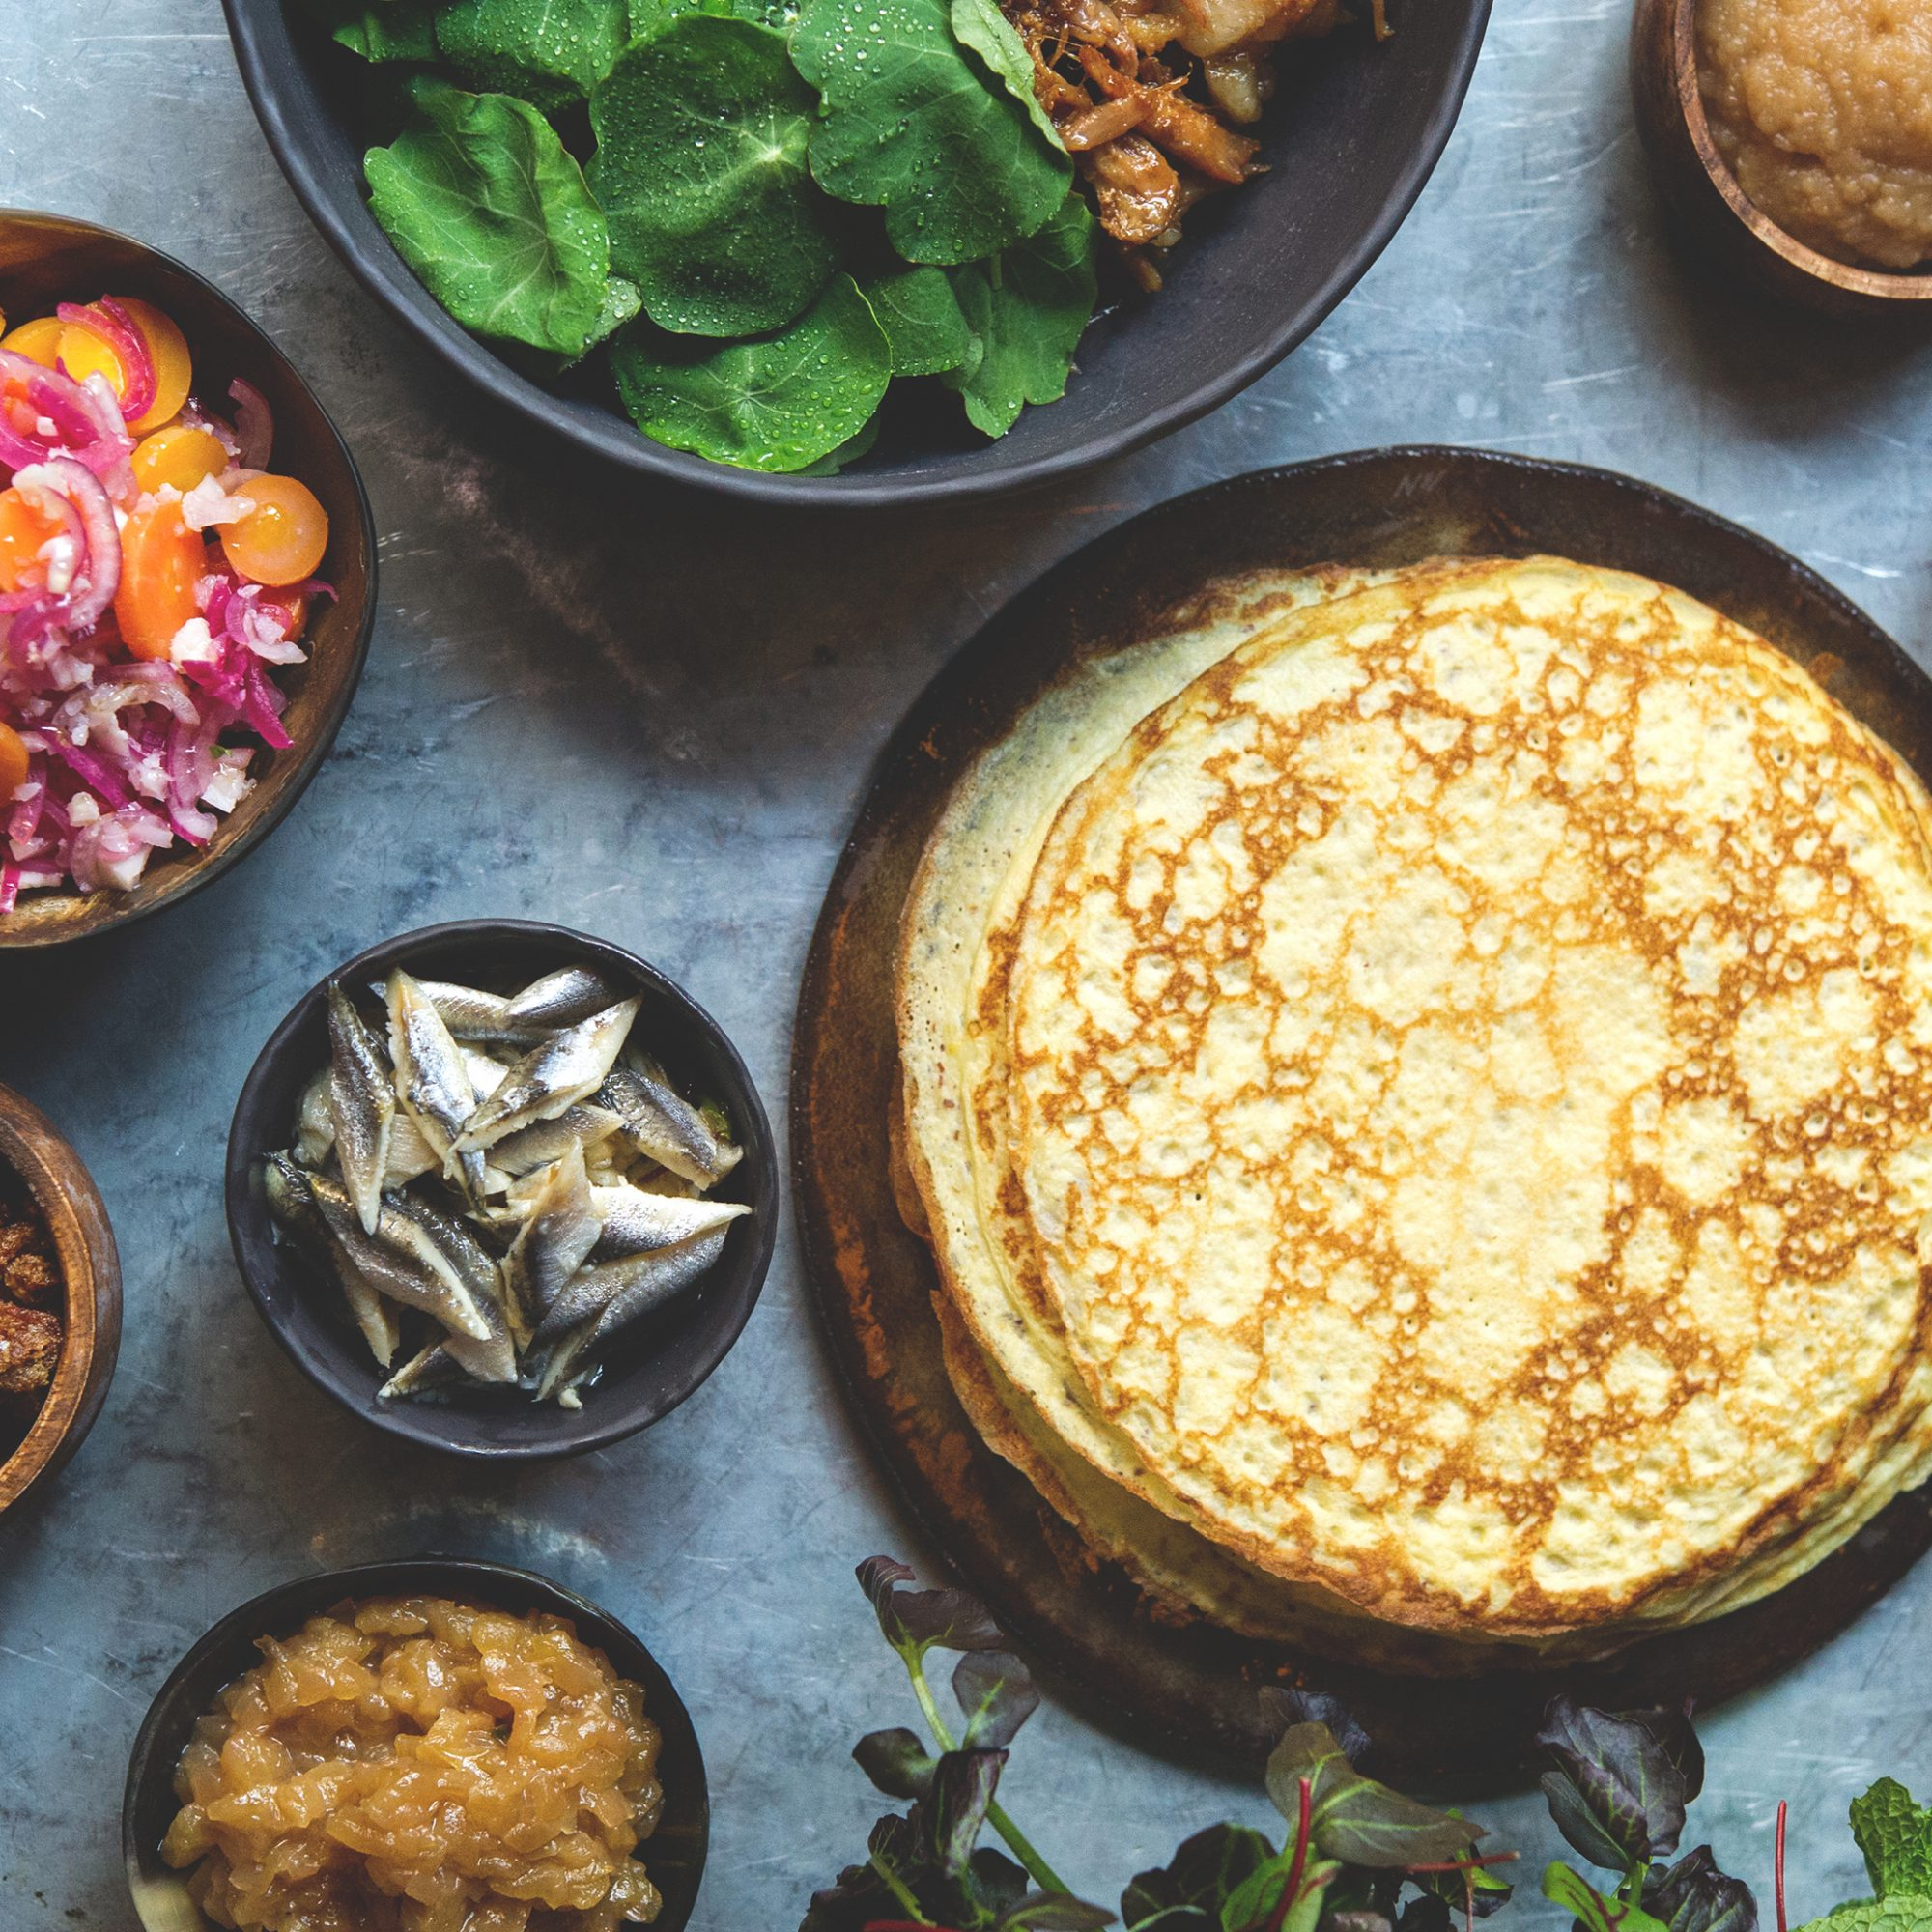 Your One-Dish Brunch Spread (Now with Pig Ears)